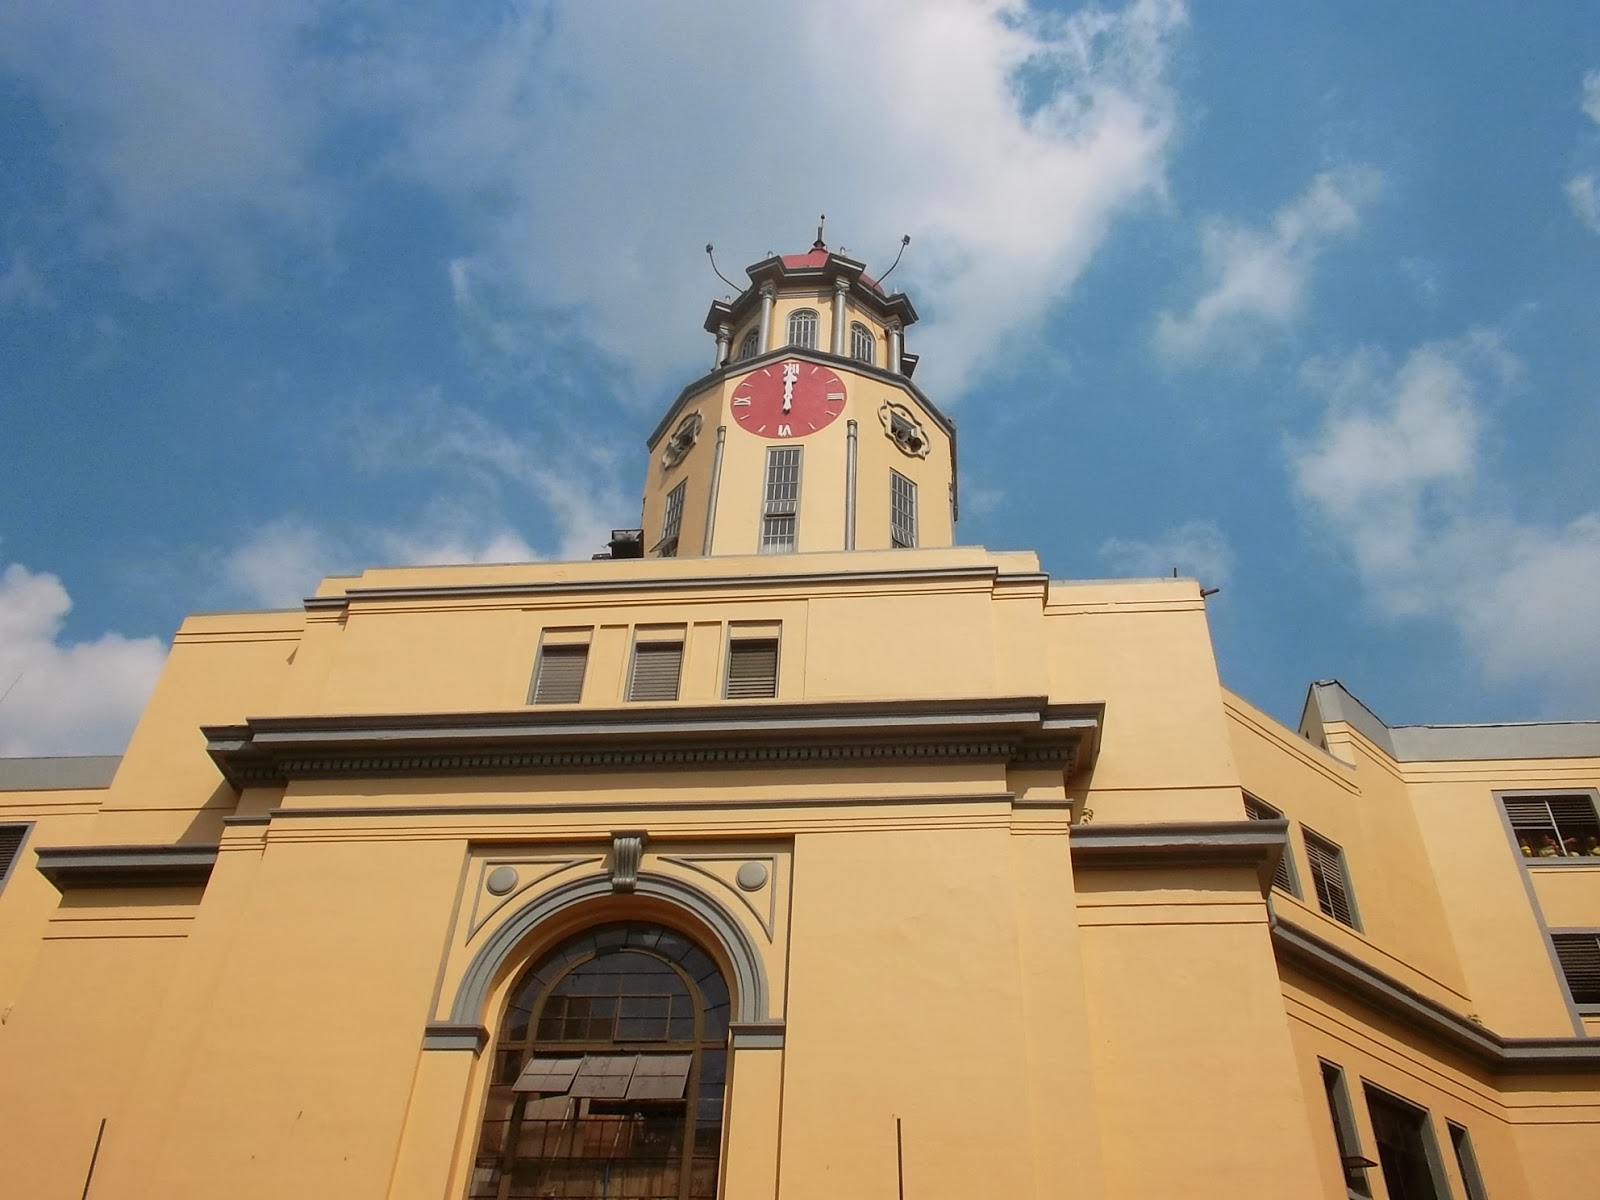 The clock tower of Manila City Hall | Source Image: http://kontedstories.blogspot.my